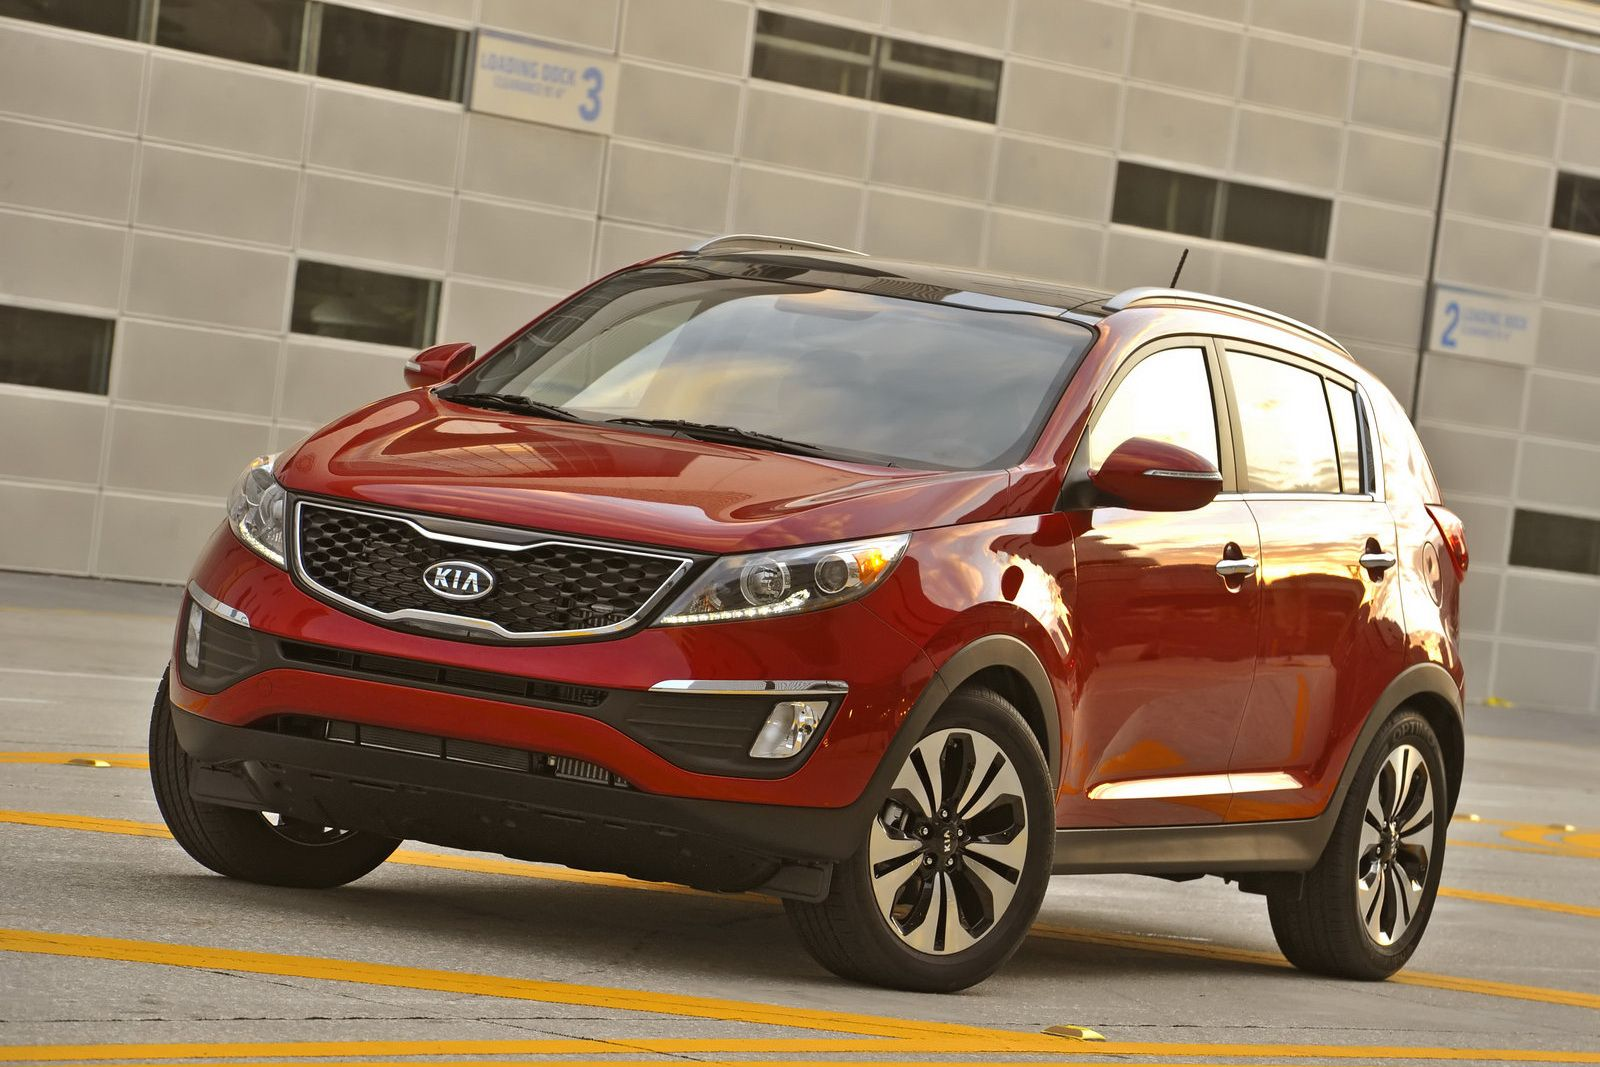 2018 kia sportage exterior interior design and price rumor car rumor kia pinterest kia sportage and cars